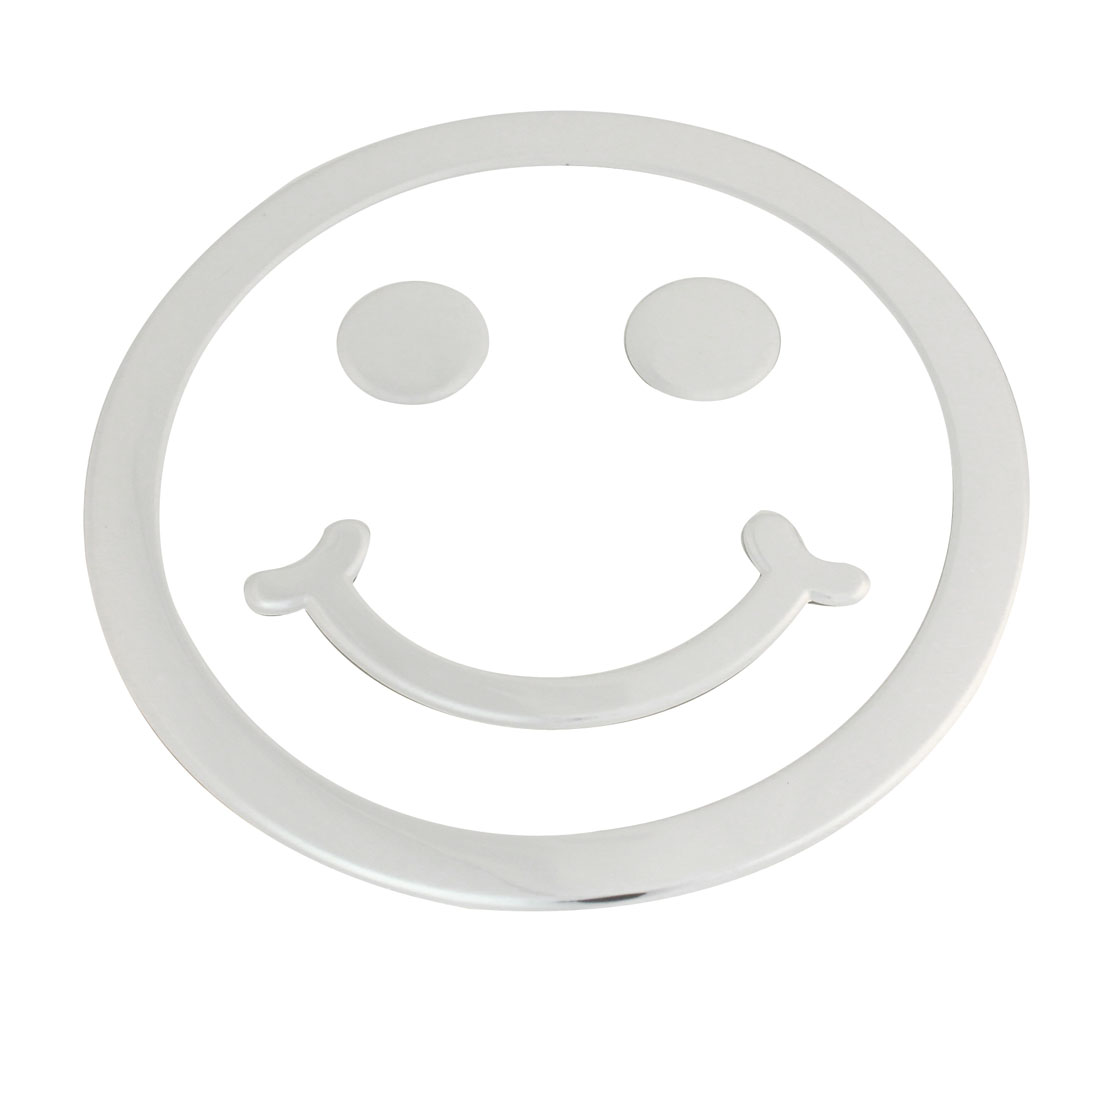 Silver Tone Smile Face Shaped 3D Sticker Decal Ornament for Vehicle Car